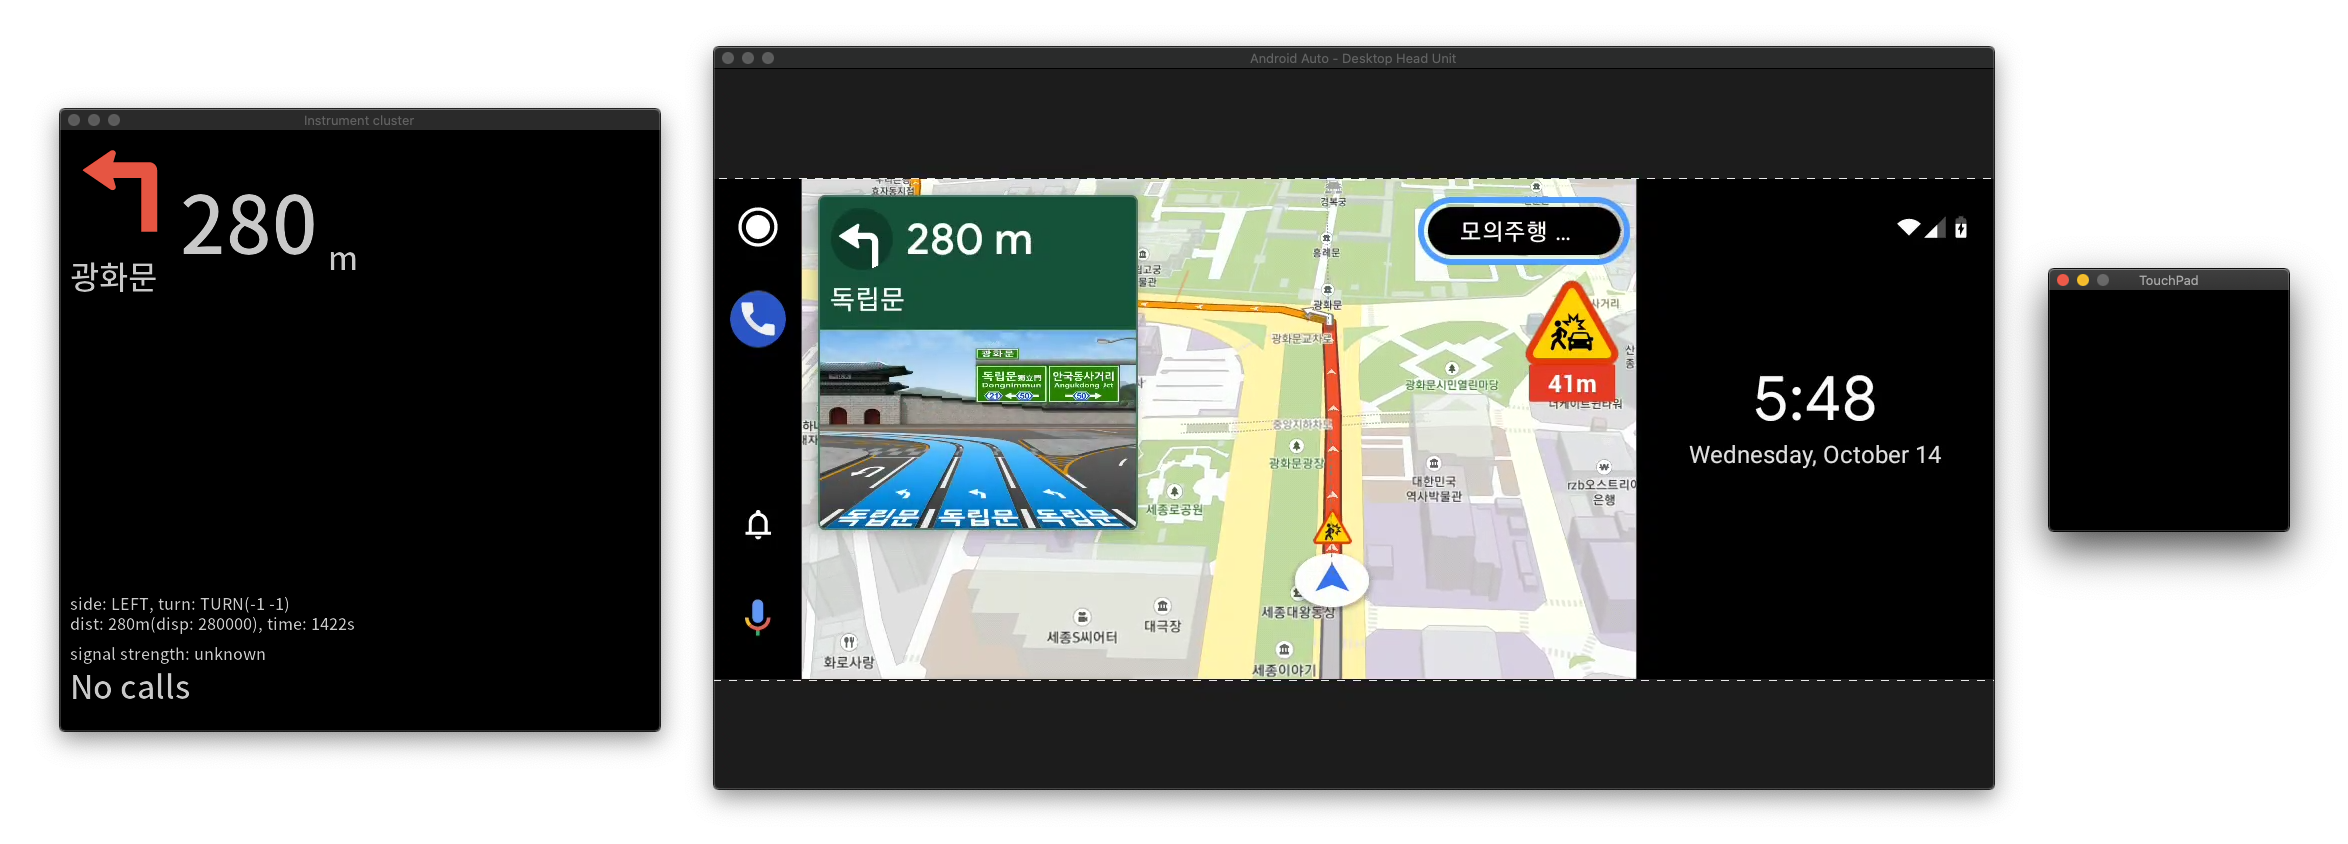 Android for cars image